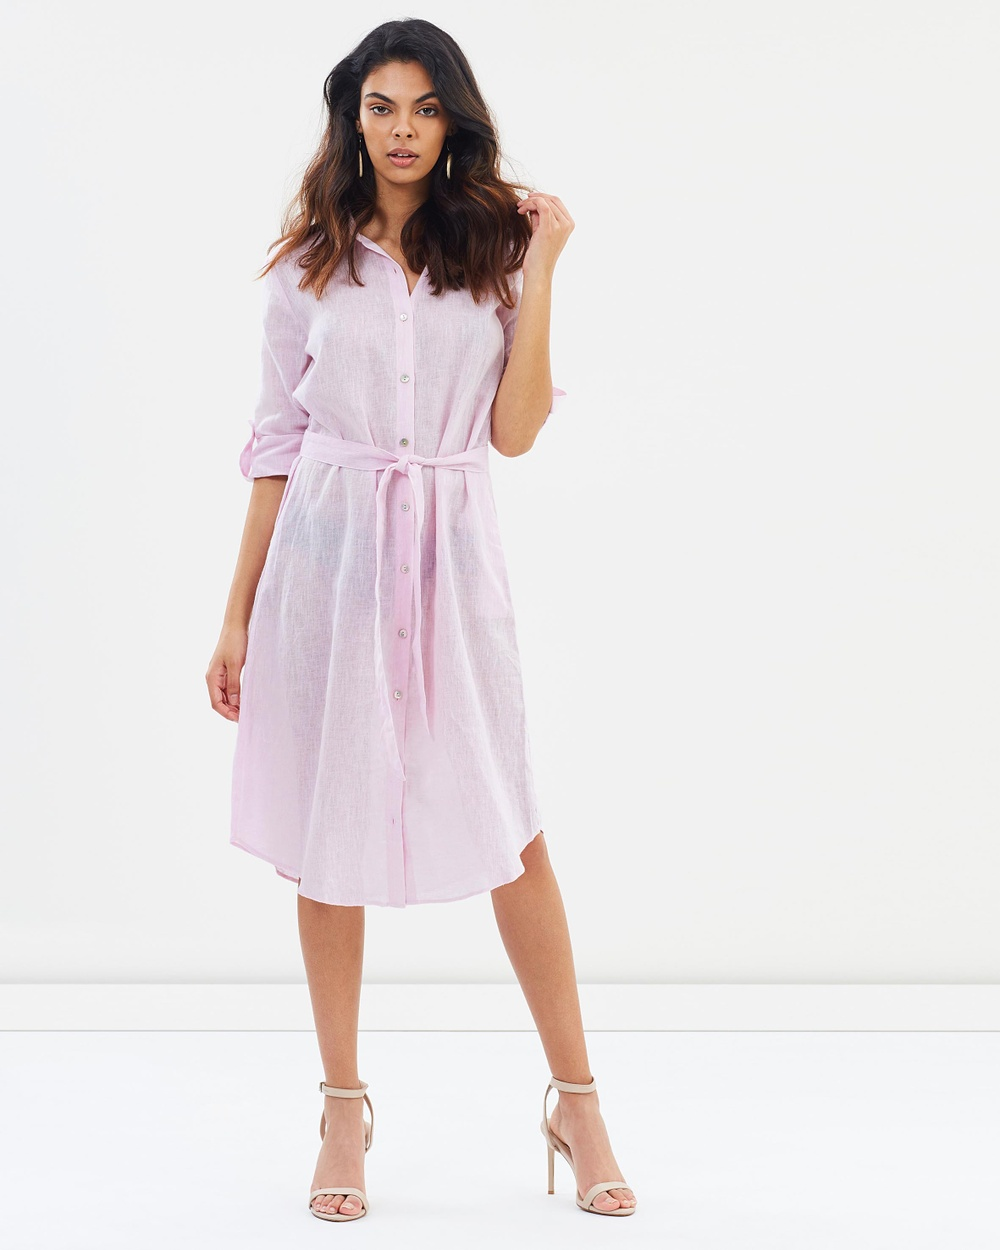 Wite Isabel Shirt Dress Dresses Pink Mist Isabel Shirt Dress